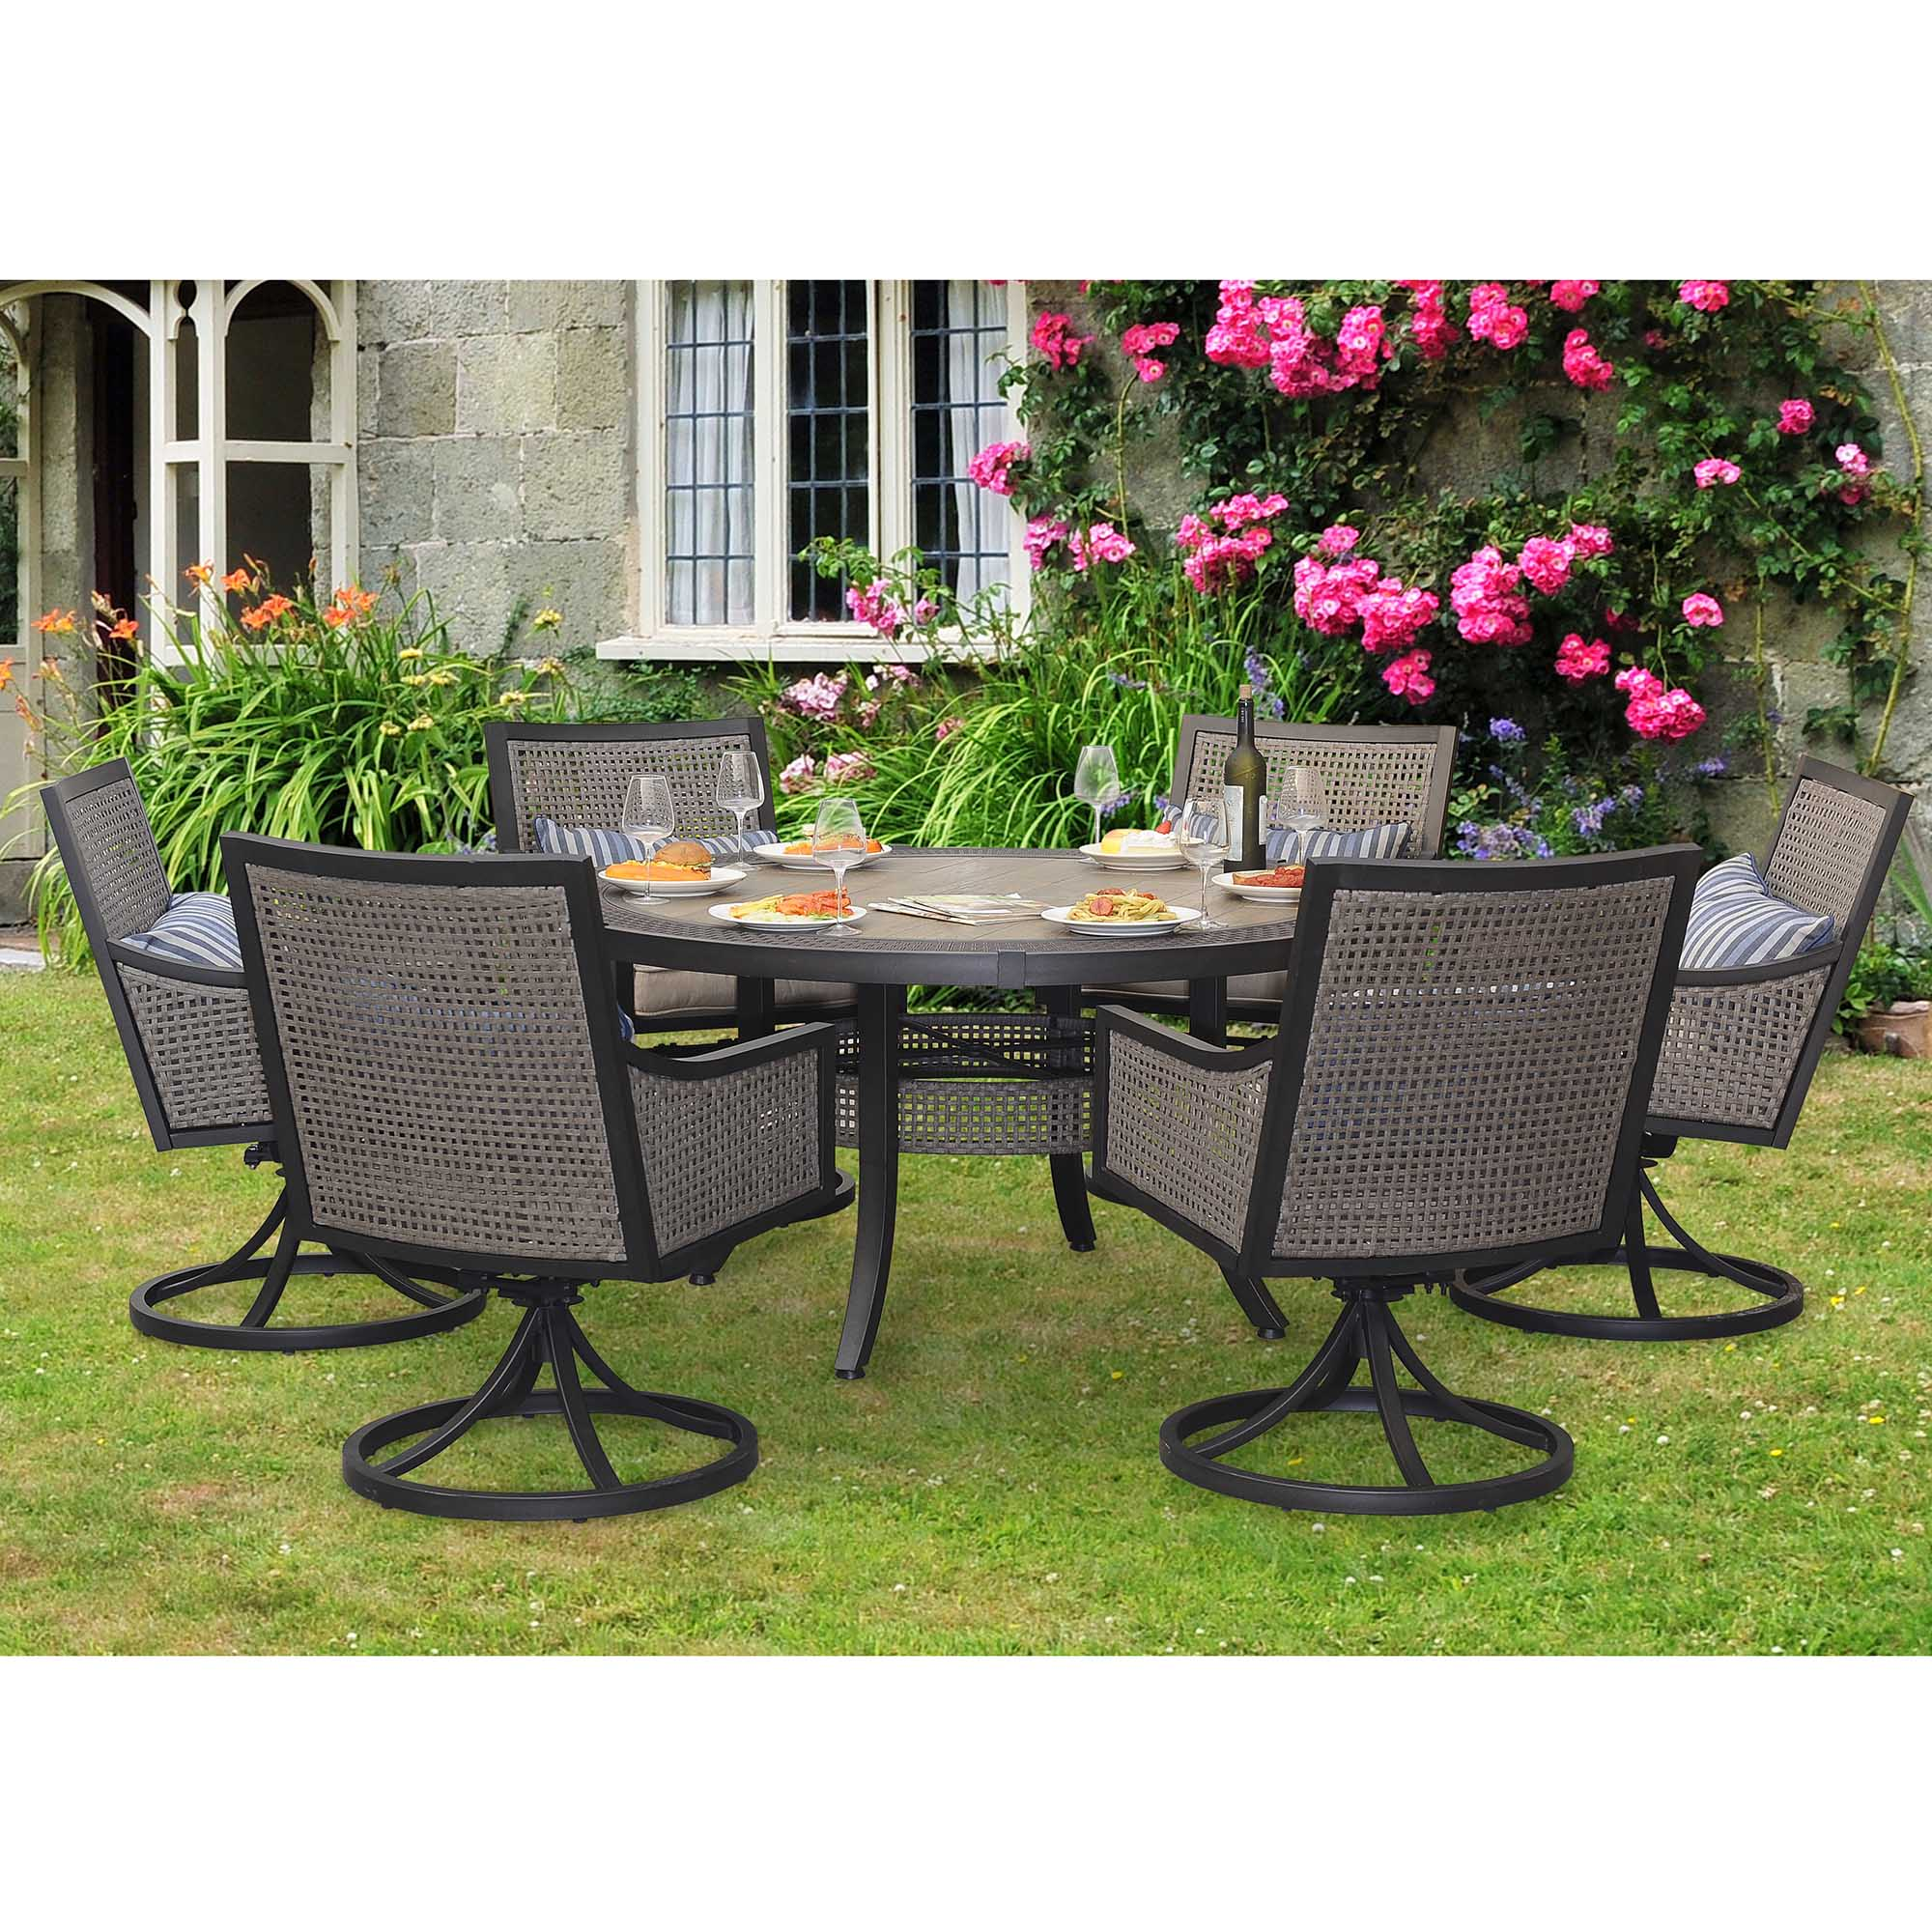 sears patio furniture sets Sunjoy 7-Piece Myna Patio Dining Set